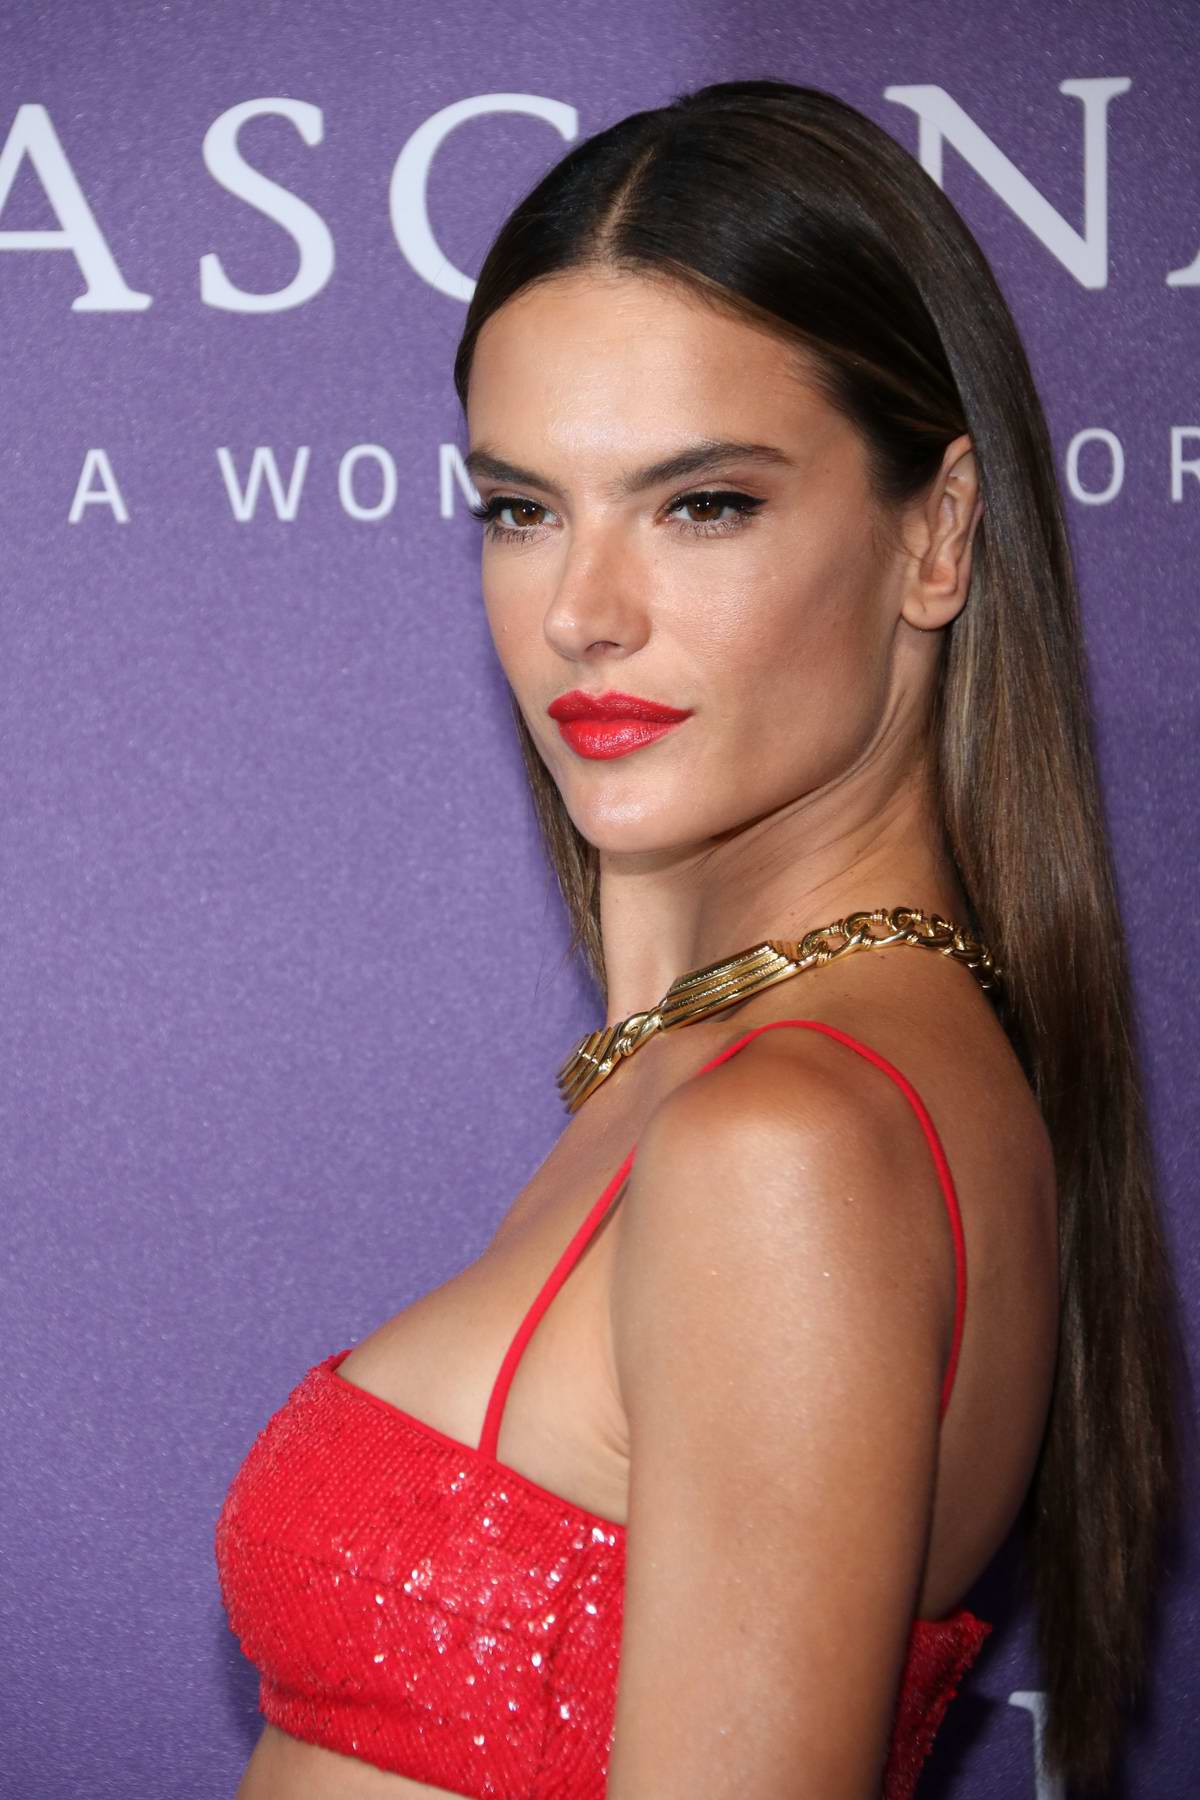 Alessandra Ambrosio attends the 'It's A Woman's World' Fashion Show at the nhow Hotel in Berlin, Germany